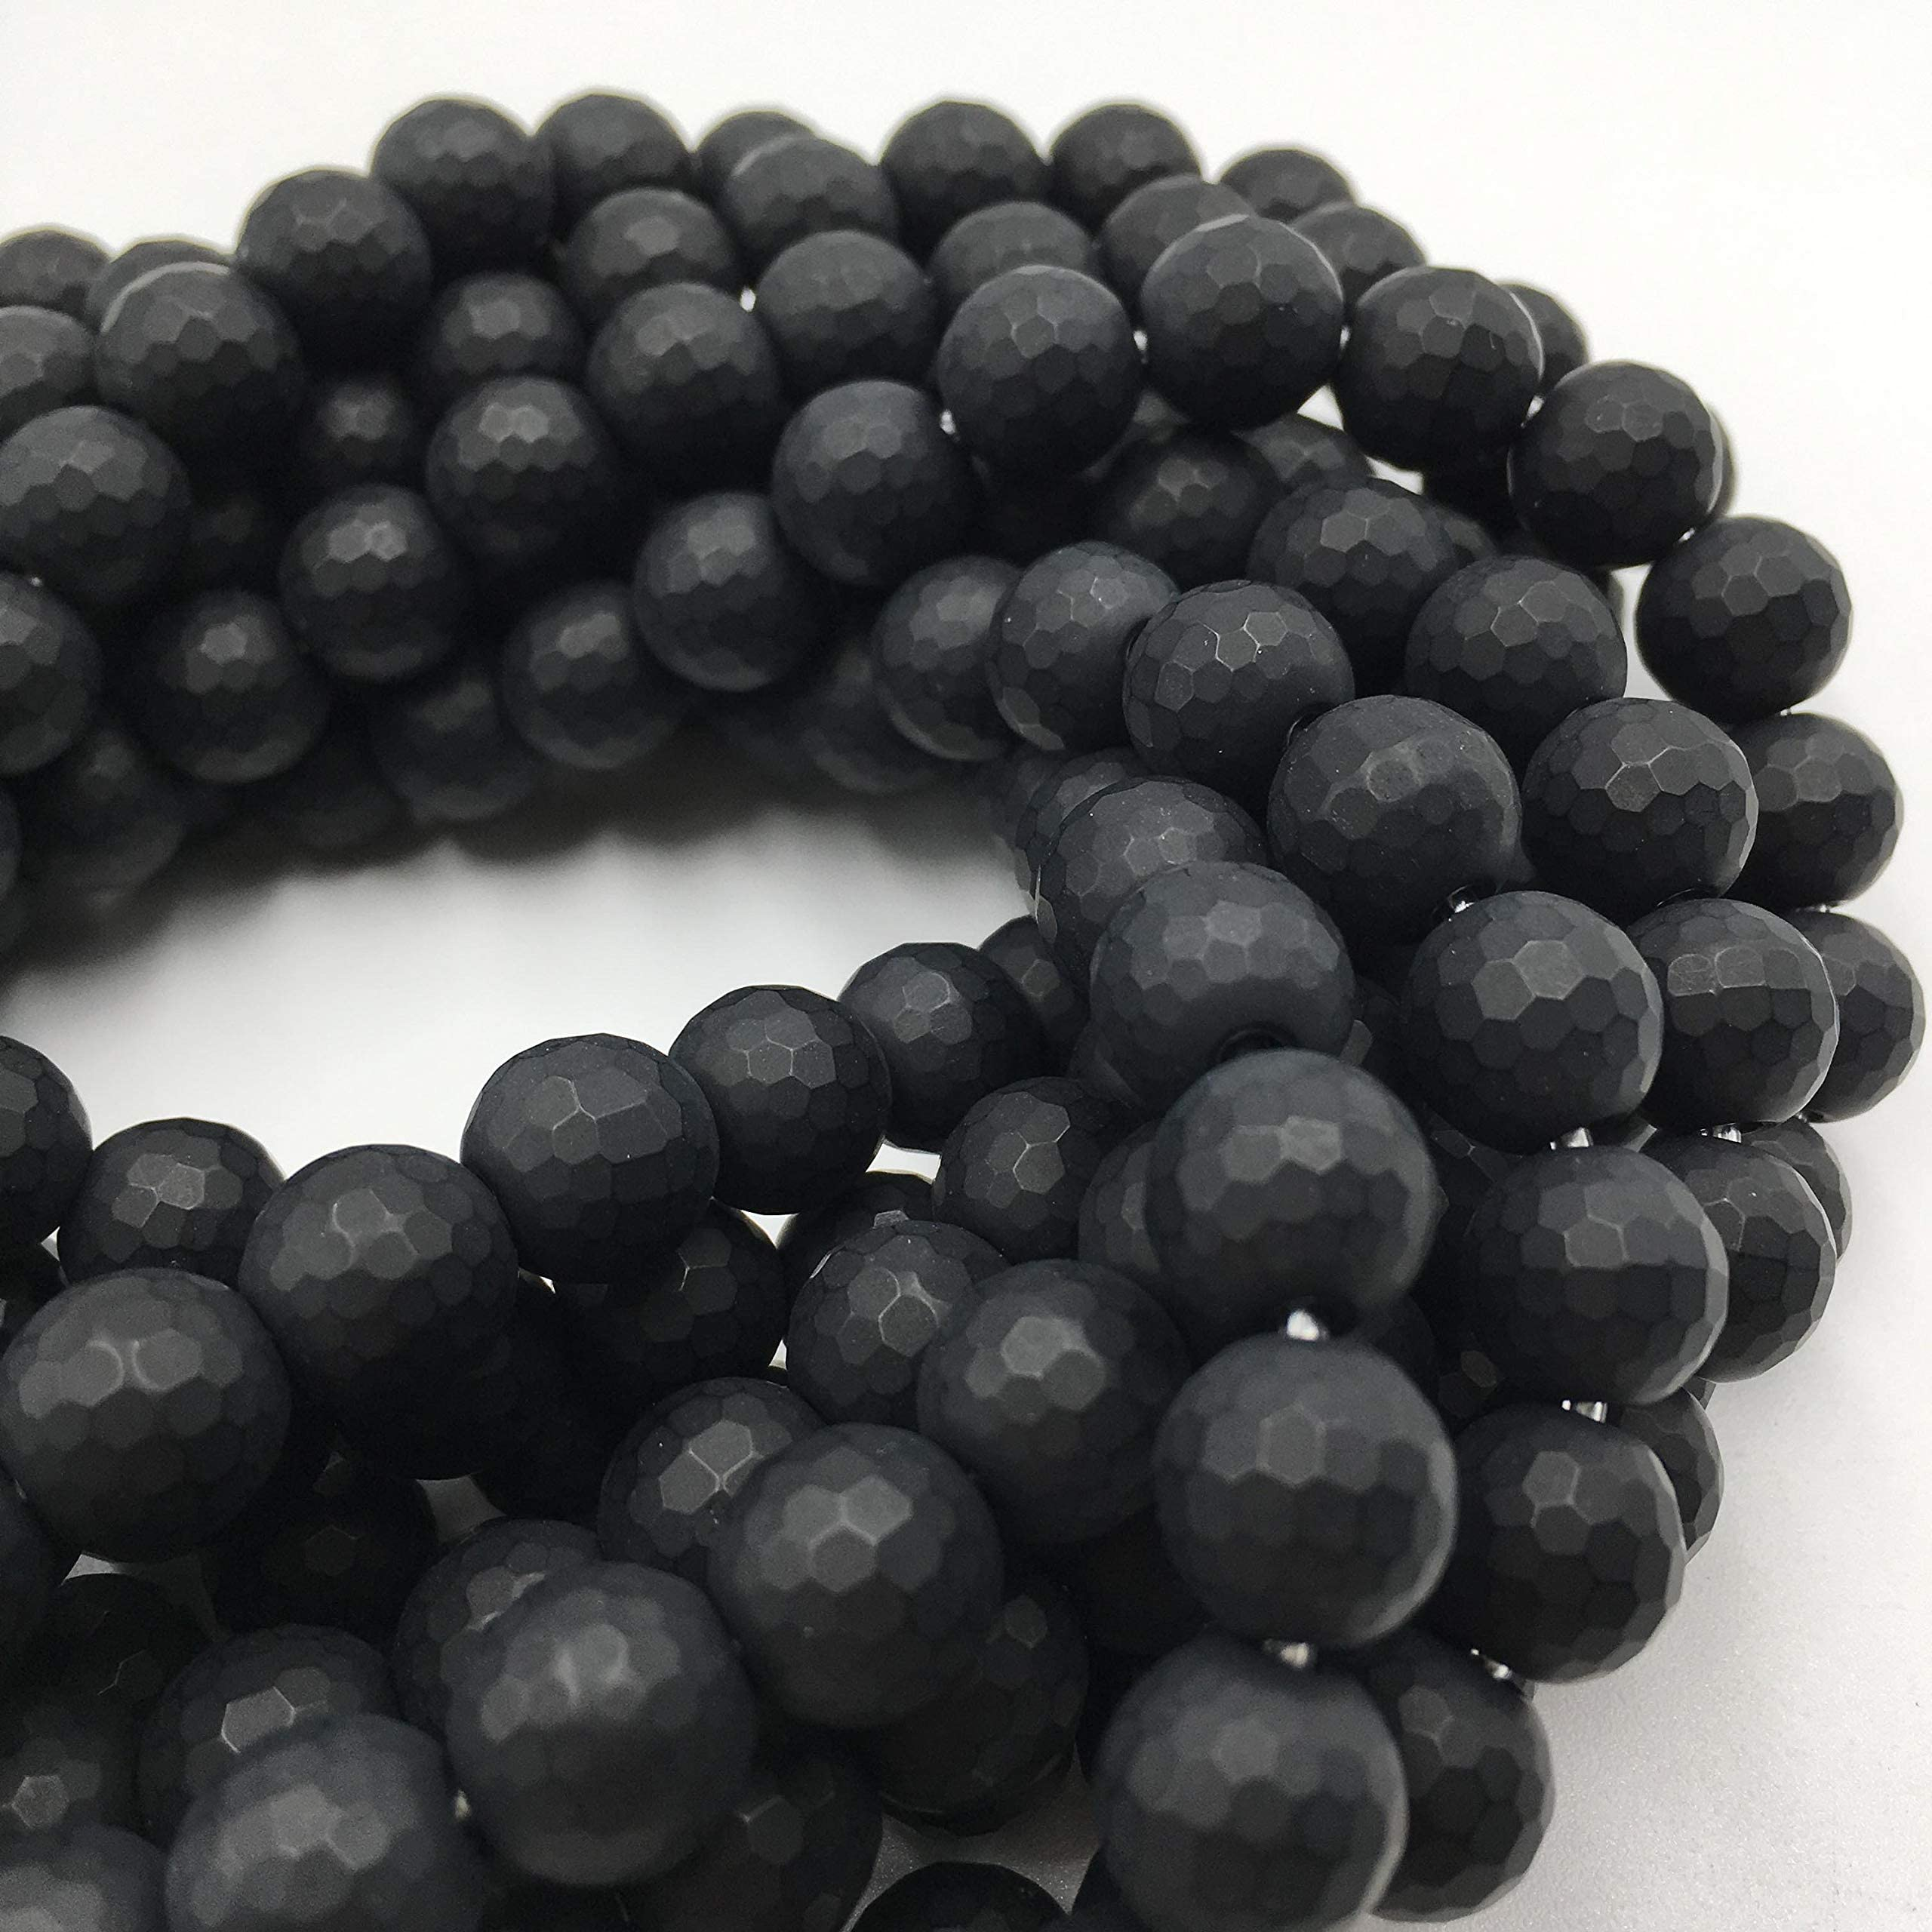 Details about  /Wholesale Lot Of 8x10mm Oval Faceted Cut AAA Natural Black Onyx  Loose Gemstone